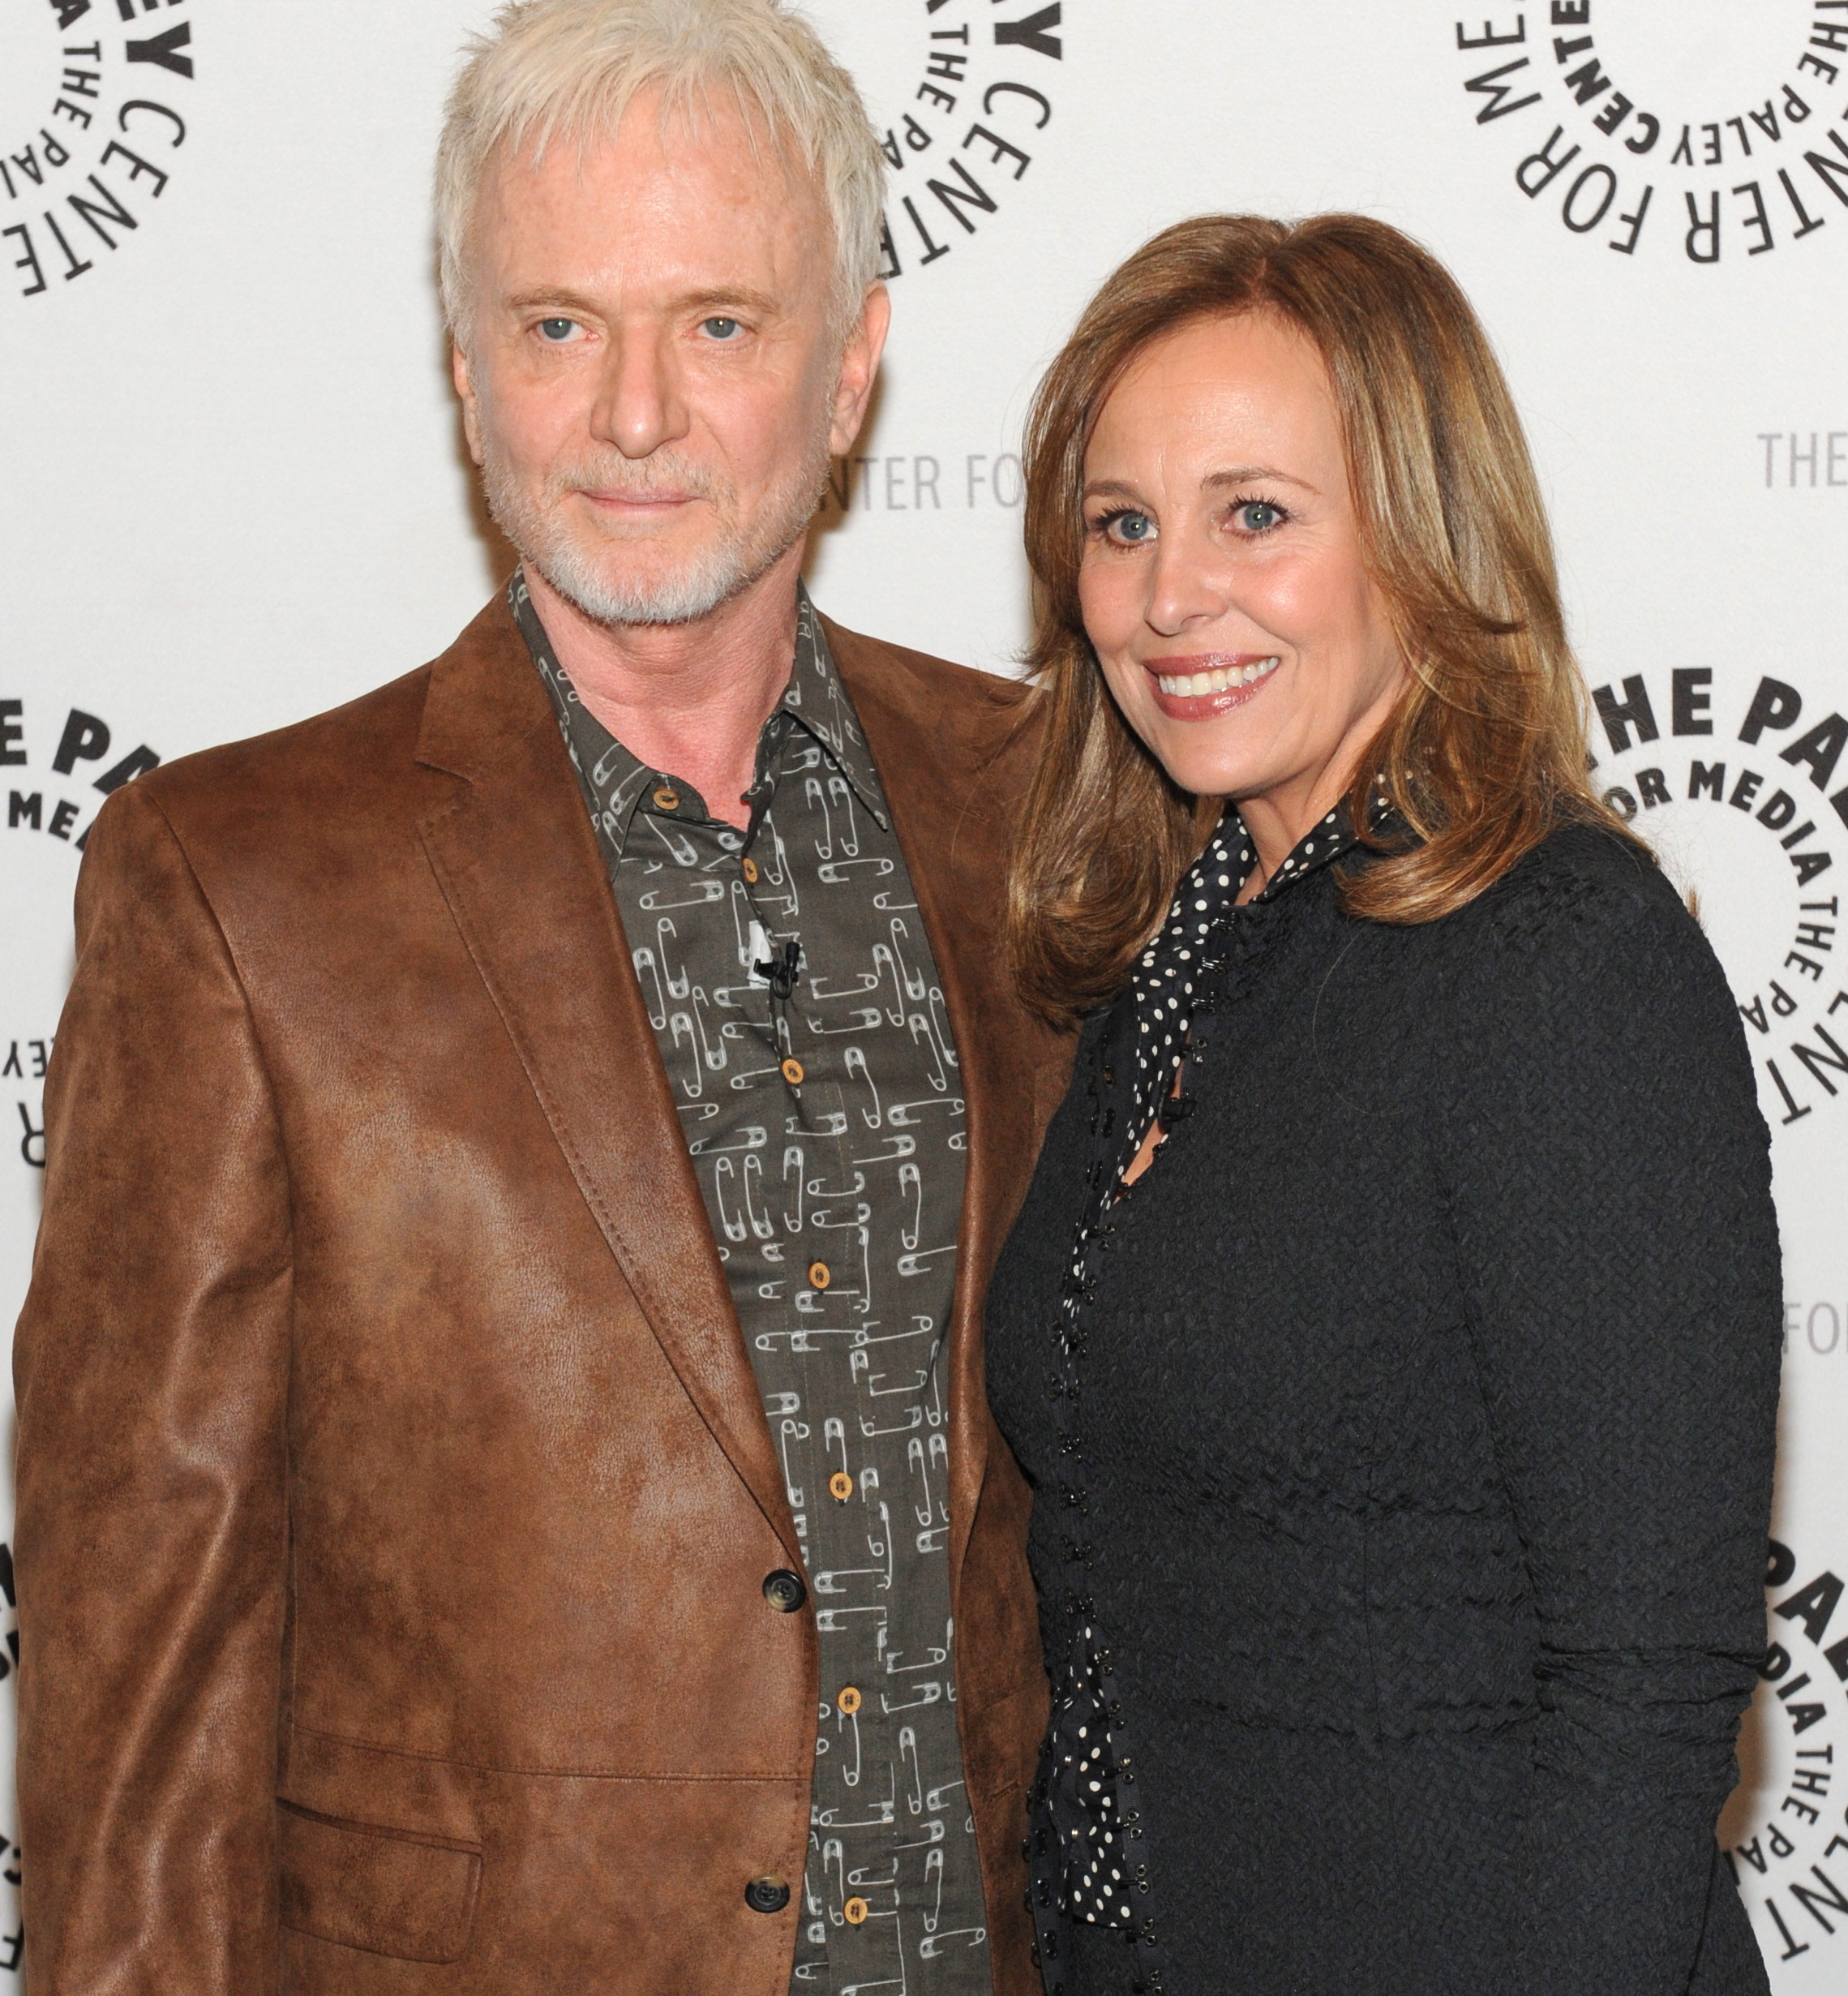 TV Goodness Reports: The Cast of ABC's General Hospital @ The Paley Center for Media [PHOTOS]